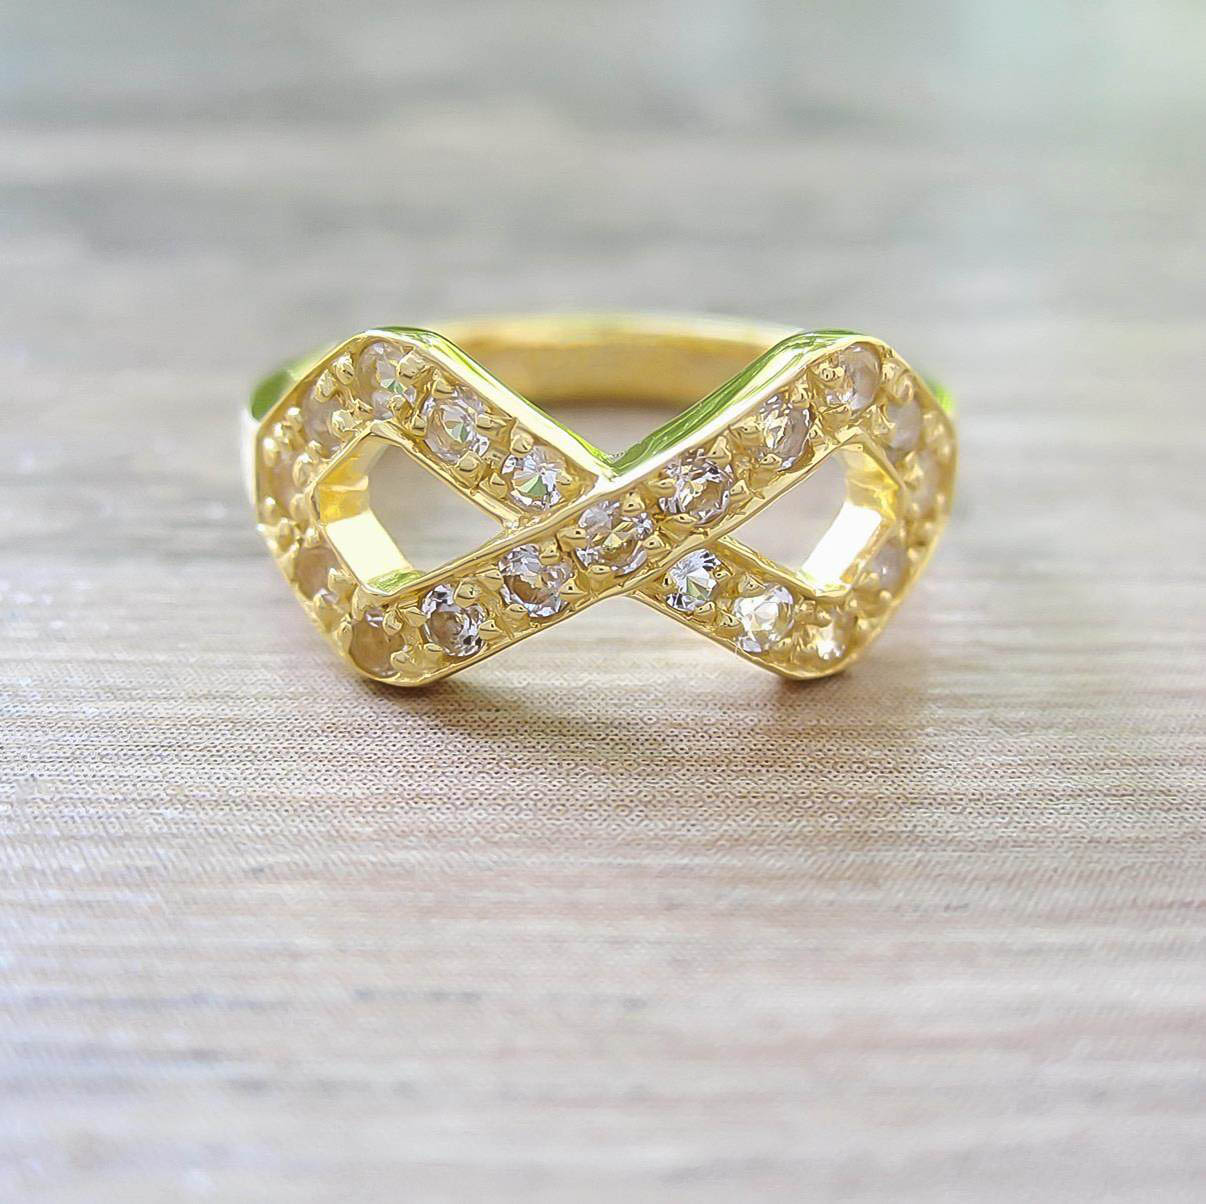 แหวน White Topaz Sterling Silver สี 18K Yellow Gold รุ่น Infinite